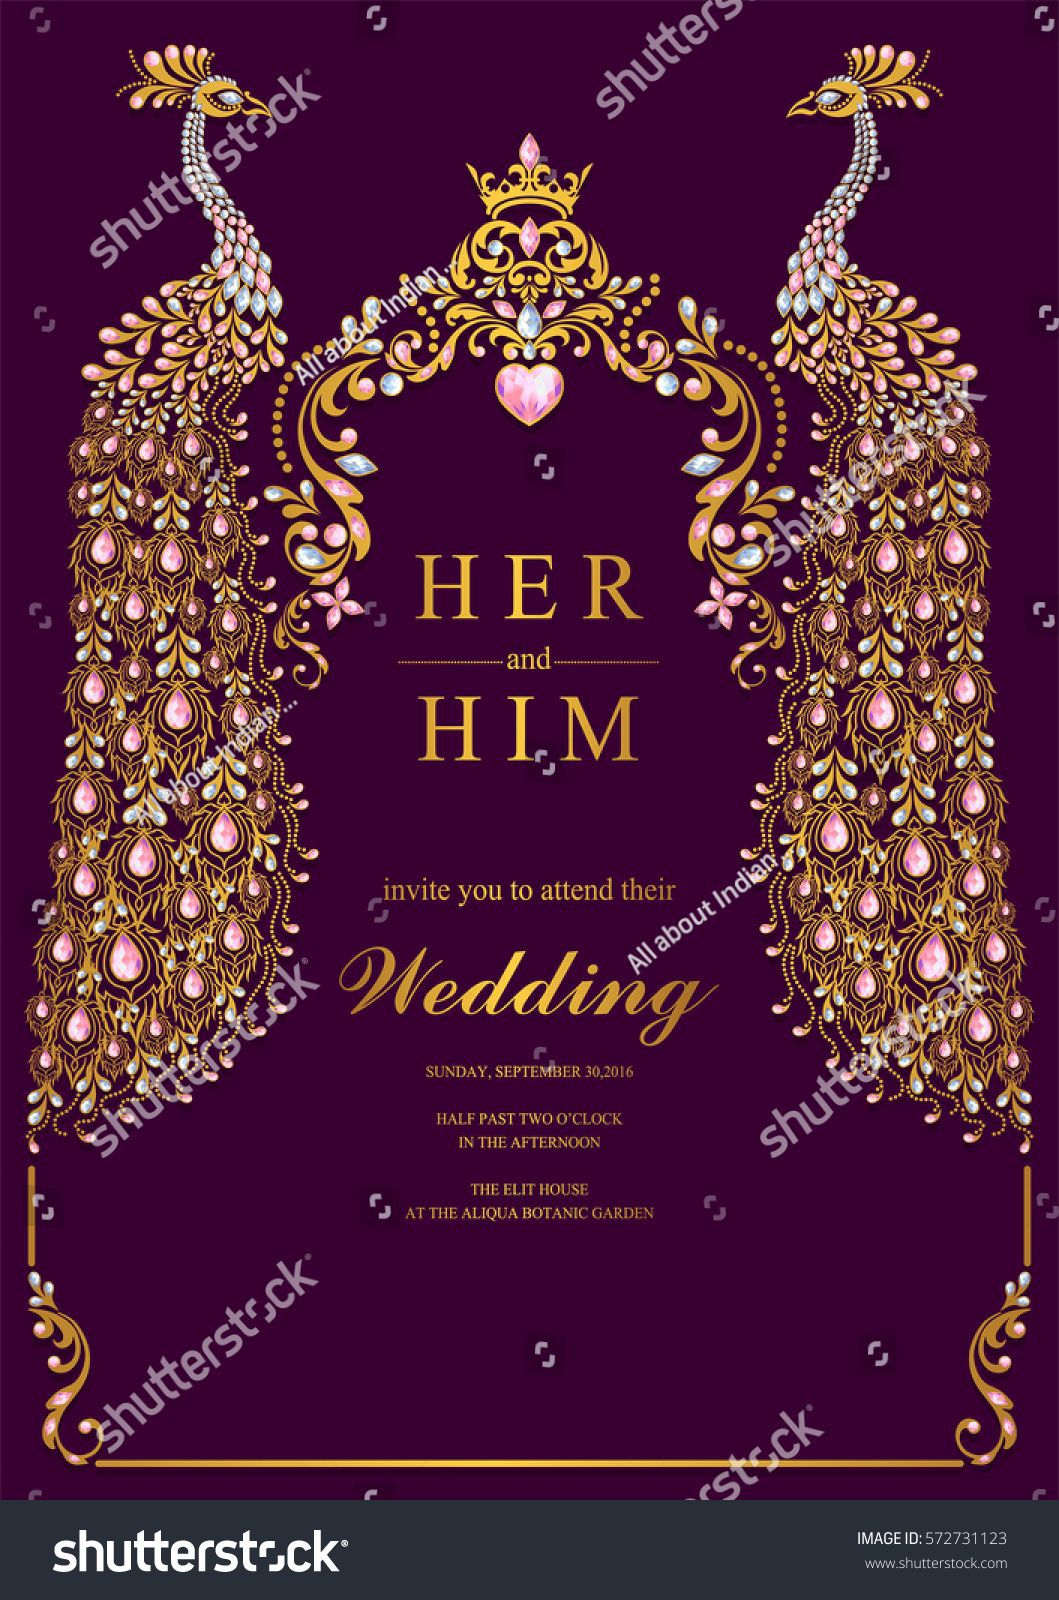 000 Beautiful Indian Wedding Invitation Template Sample  Psd Free Download Marriage Online For FriendFull